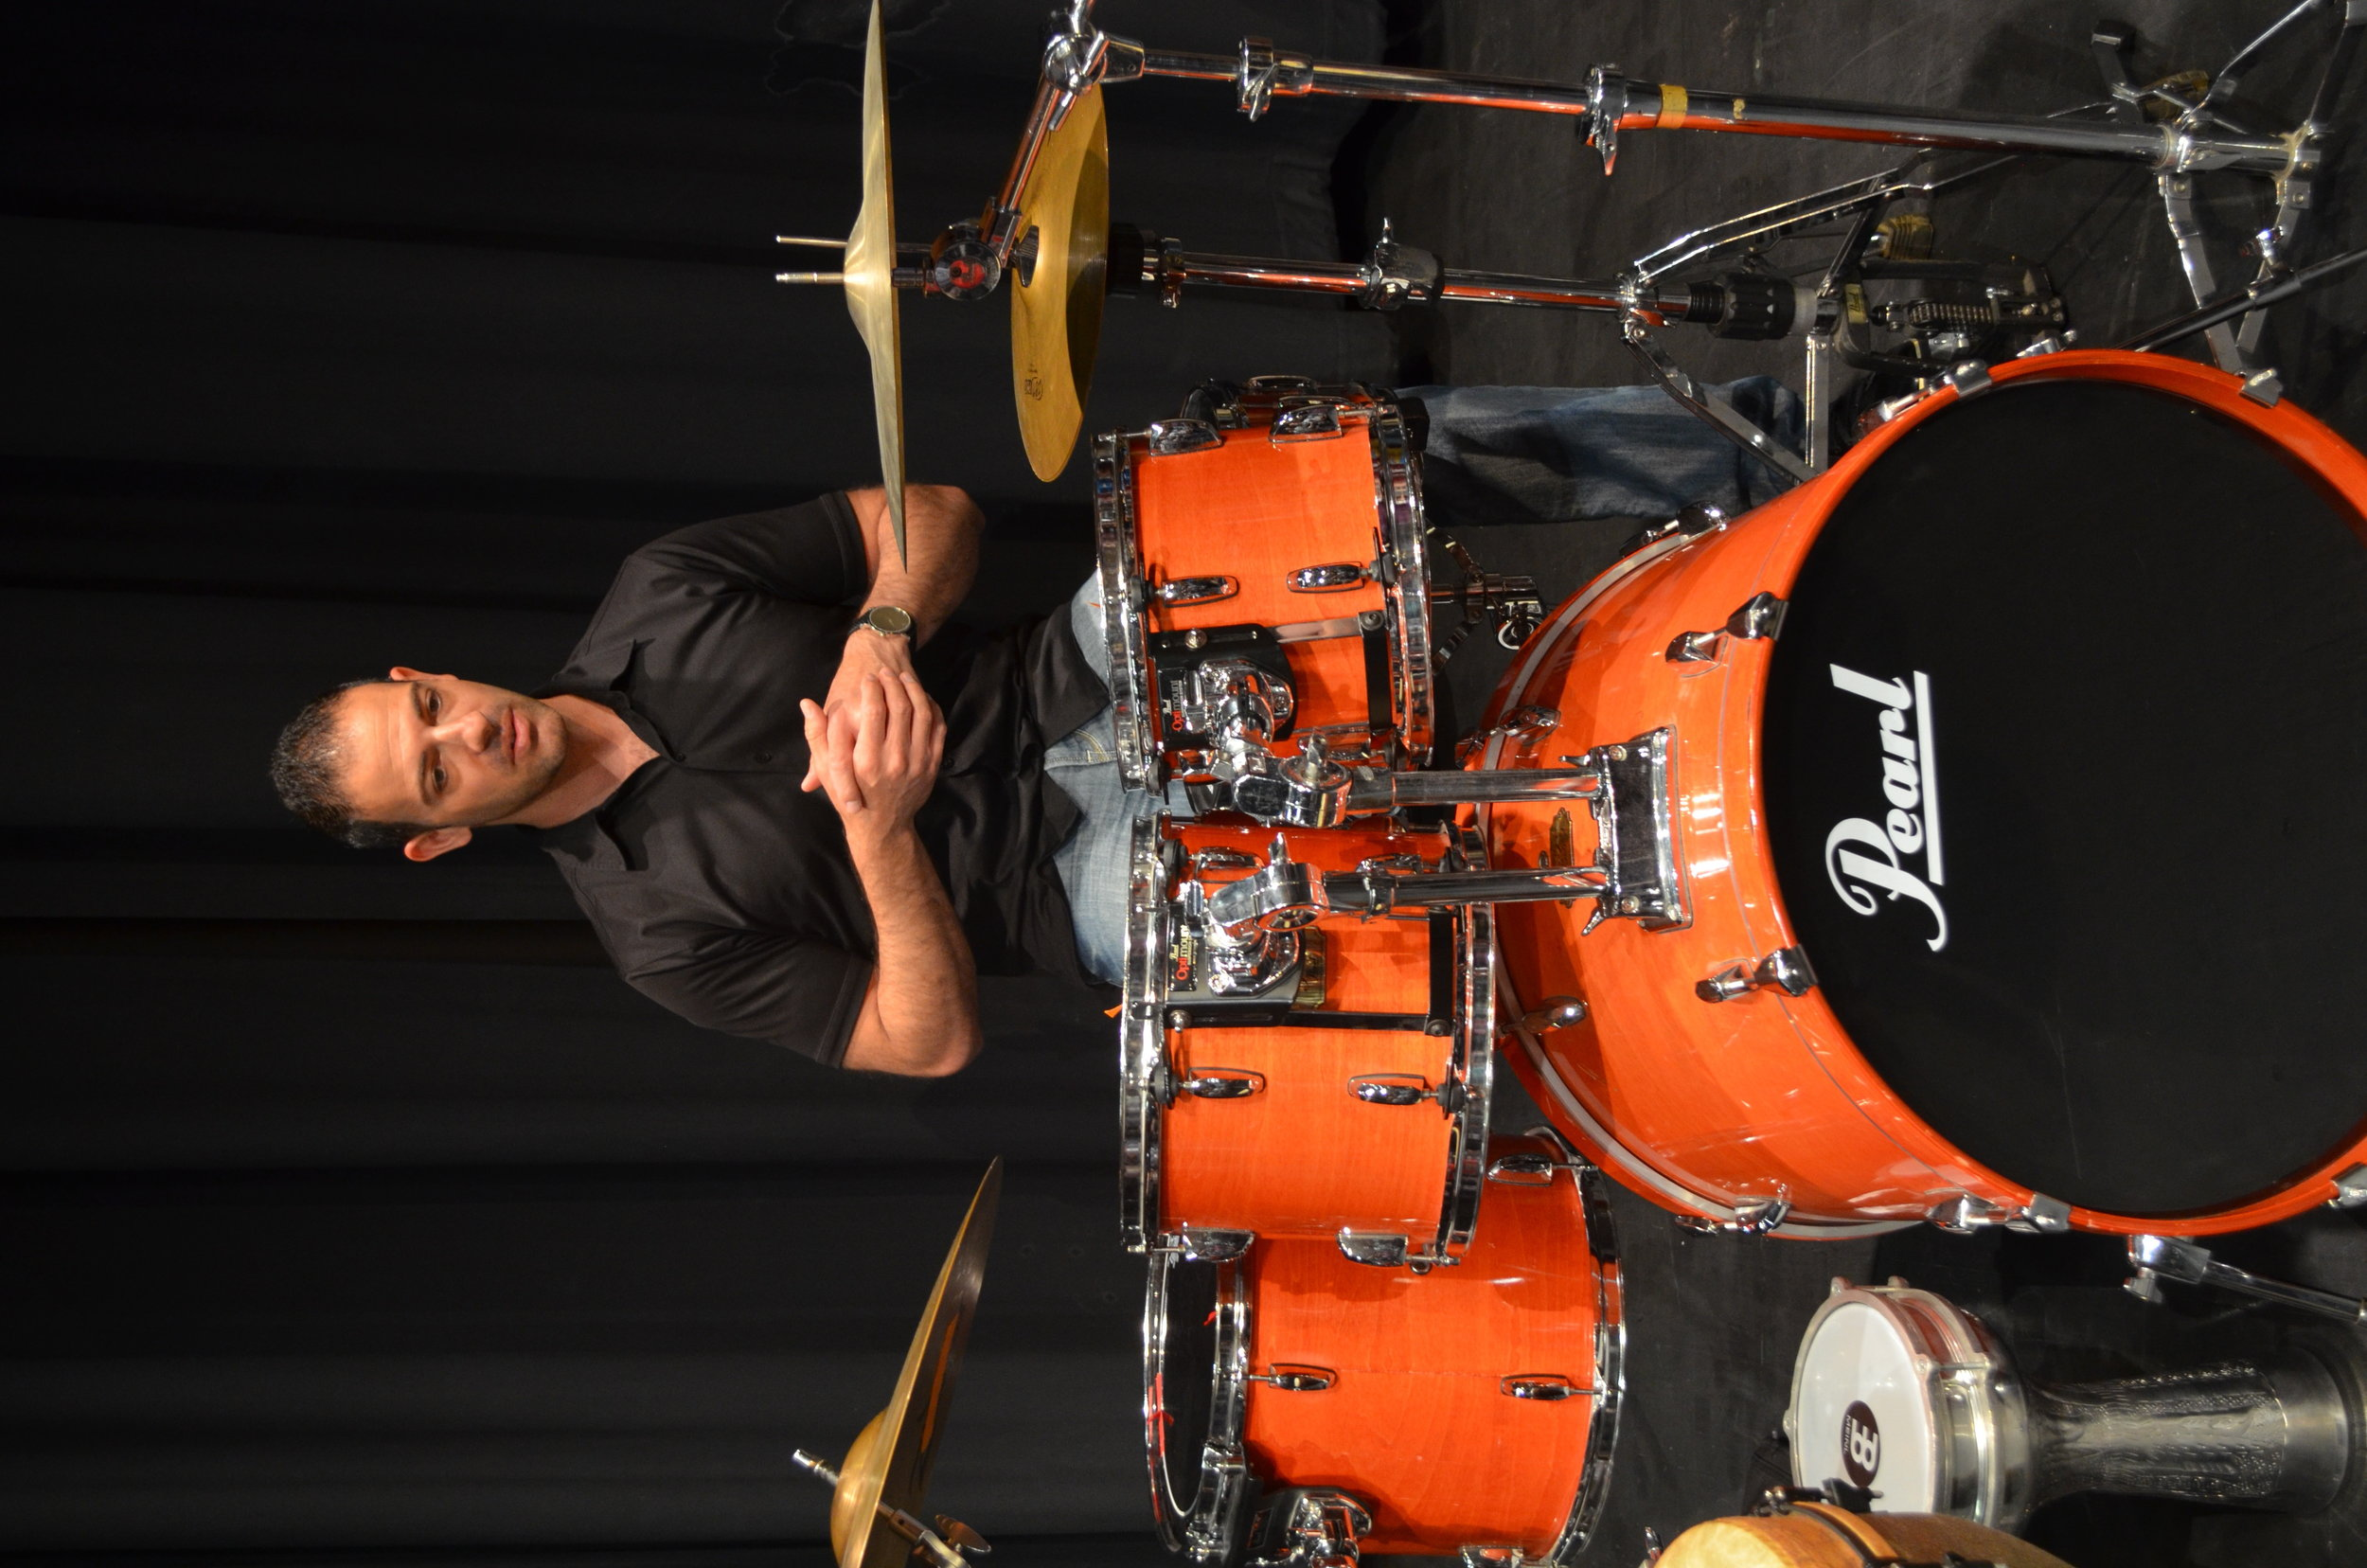 Steve Moretti giving a demonstration on rhythm